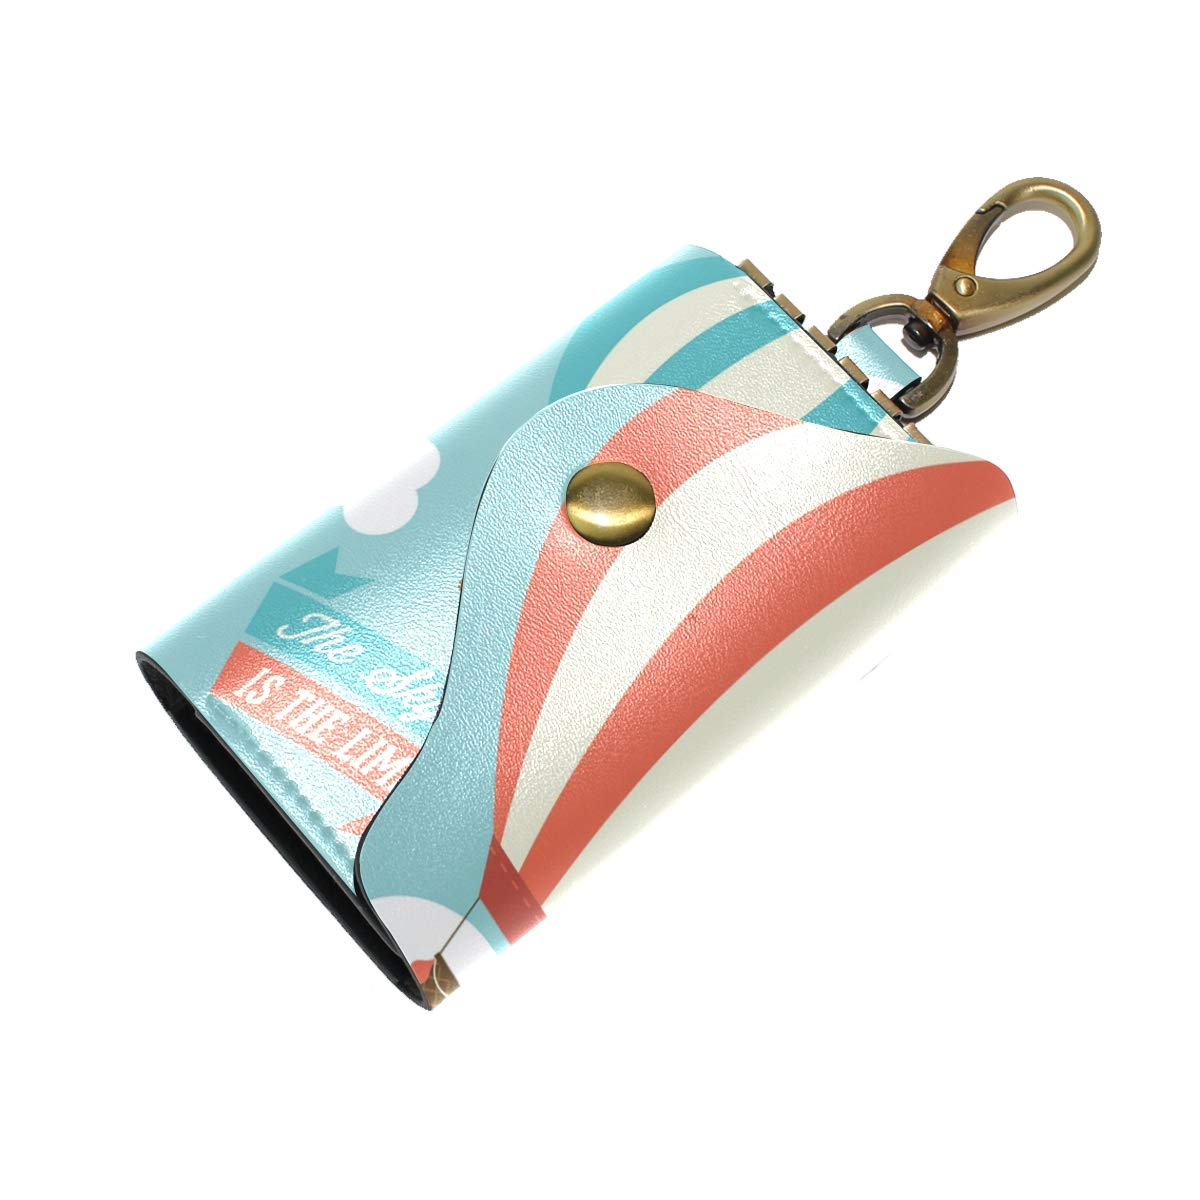 KEAKIA Hot Air Balloons Leather Key Case Wallets Tri-fold Key Holder Keychains with 6 Hooks 2 Slot Snap Closure for Men Women